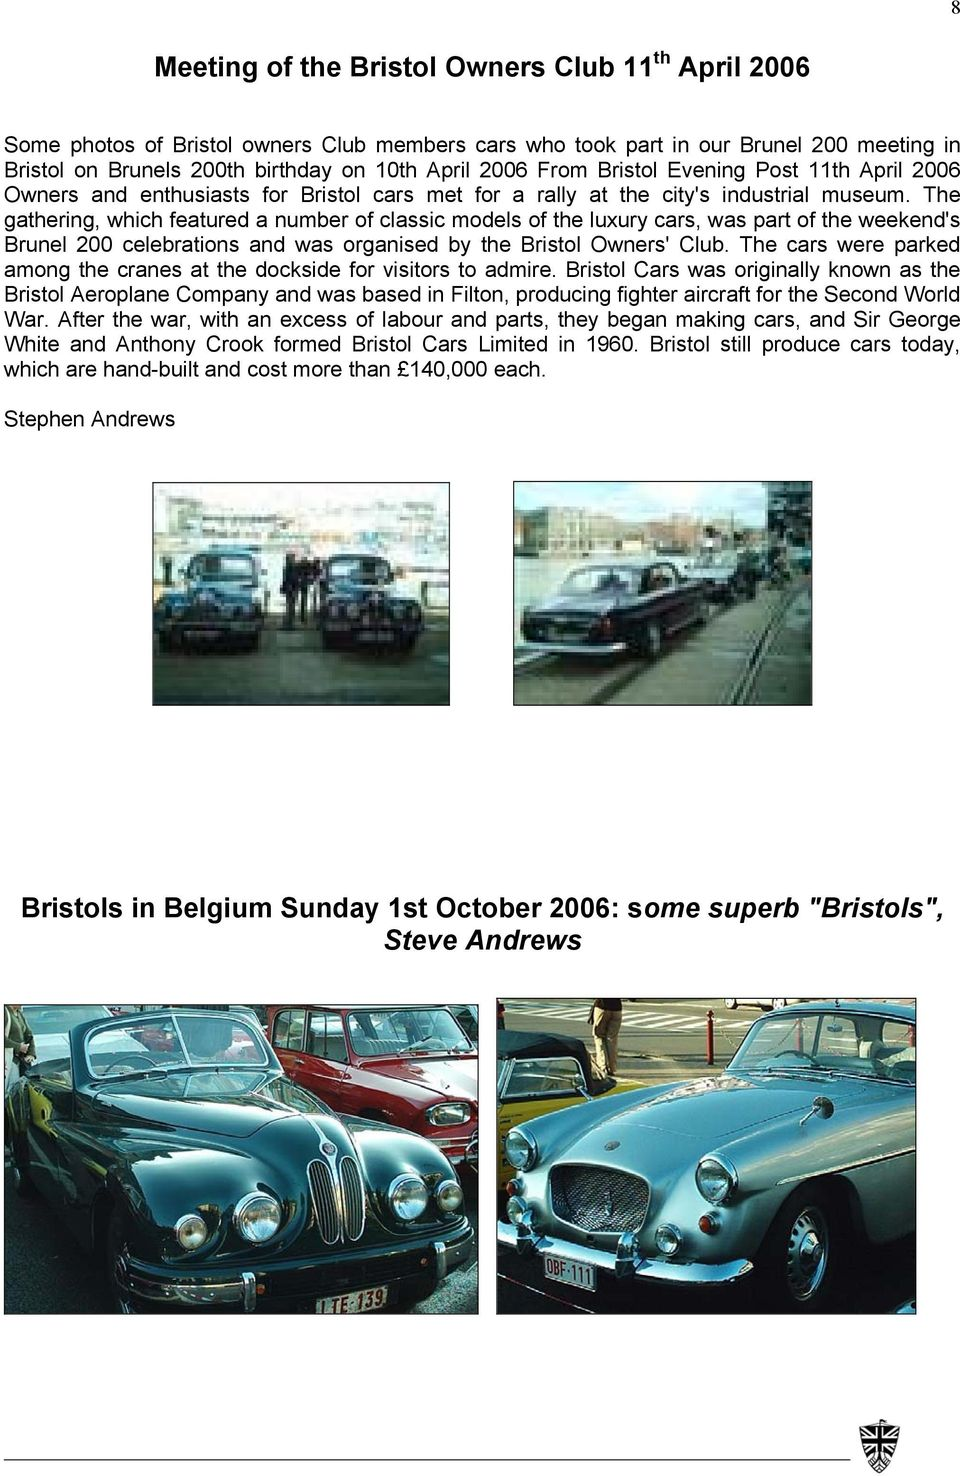 The gathering, which featured a number of classic models of the luxury cars, was part of the weekend's Brunel 200 celebrations and was organised by the Bristol Owners' Club.